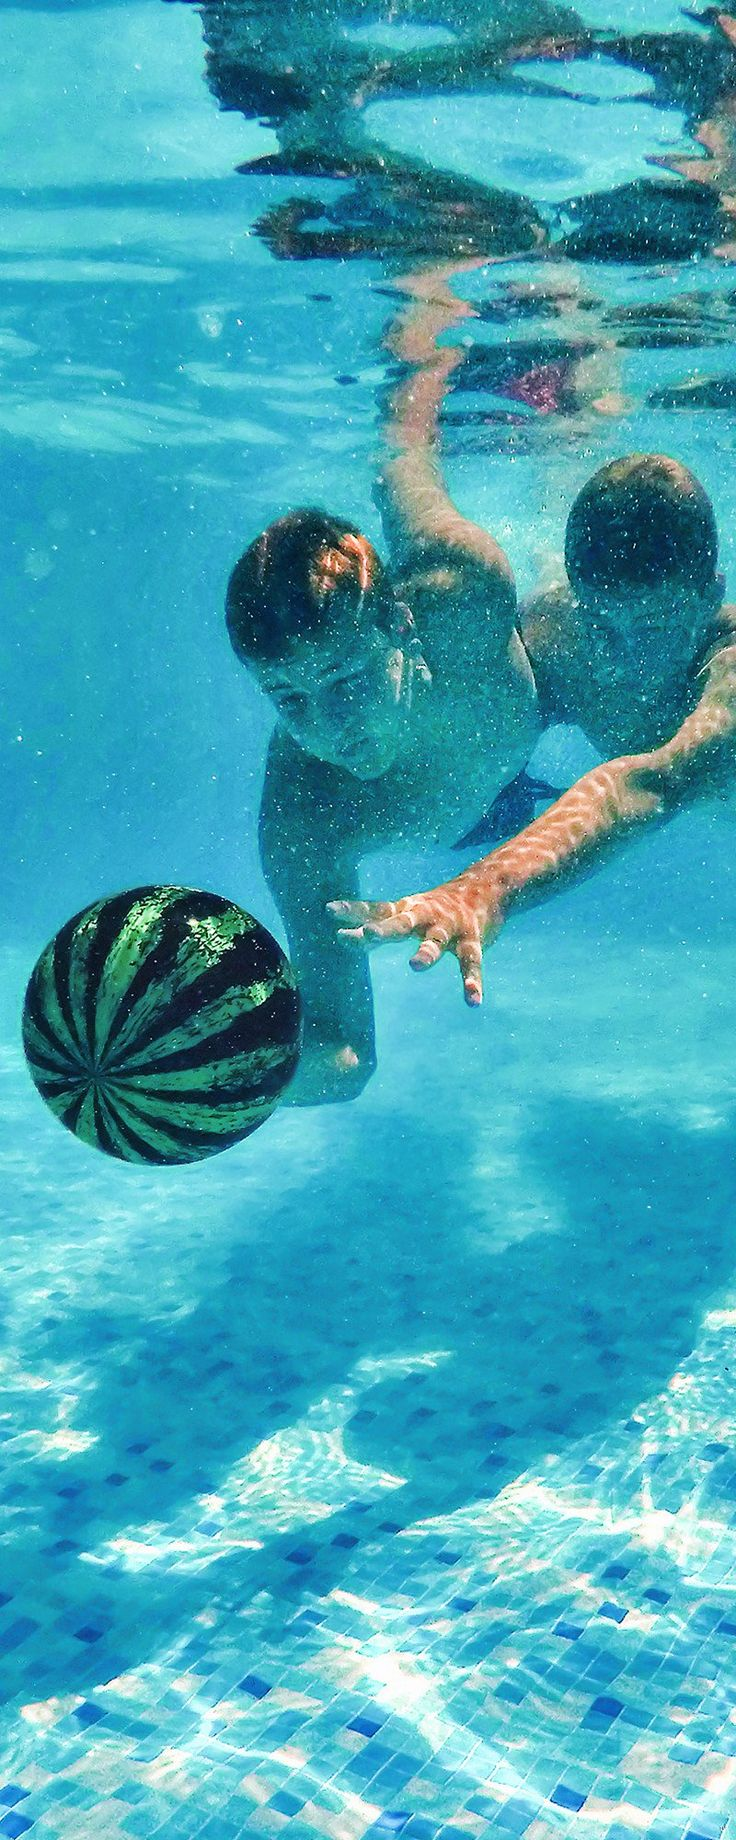 25 best ideas about water pool games on pinterest water - Watermelon ball swimming pool game ...